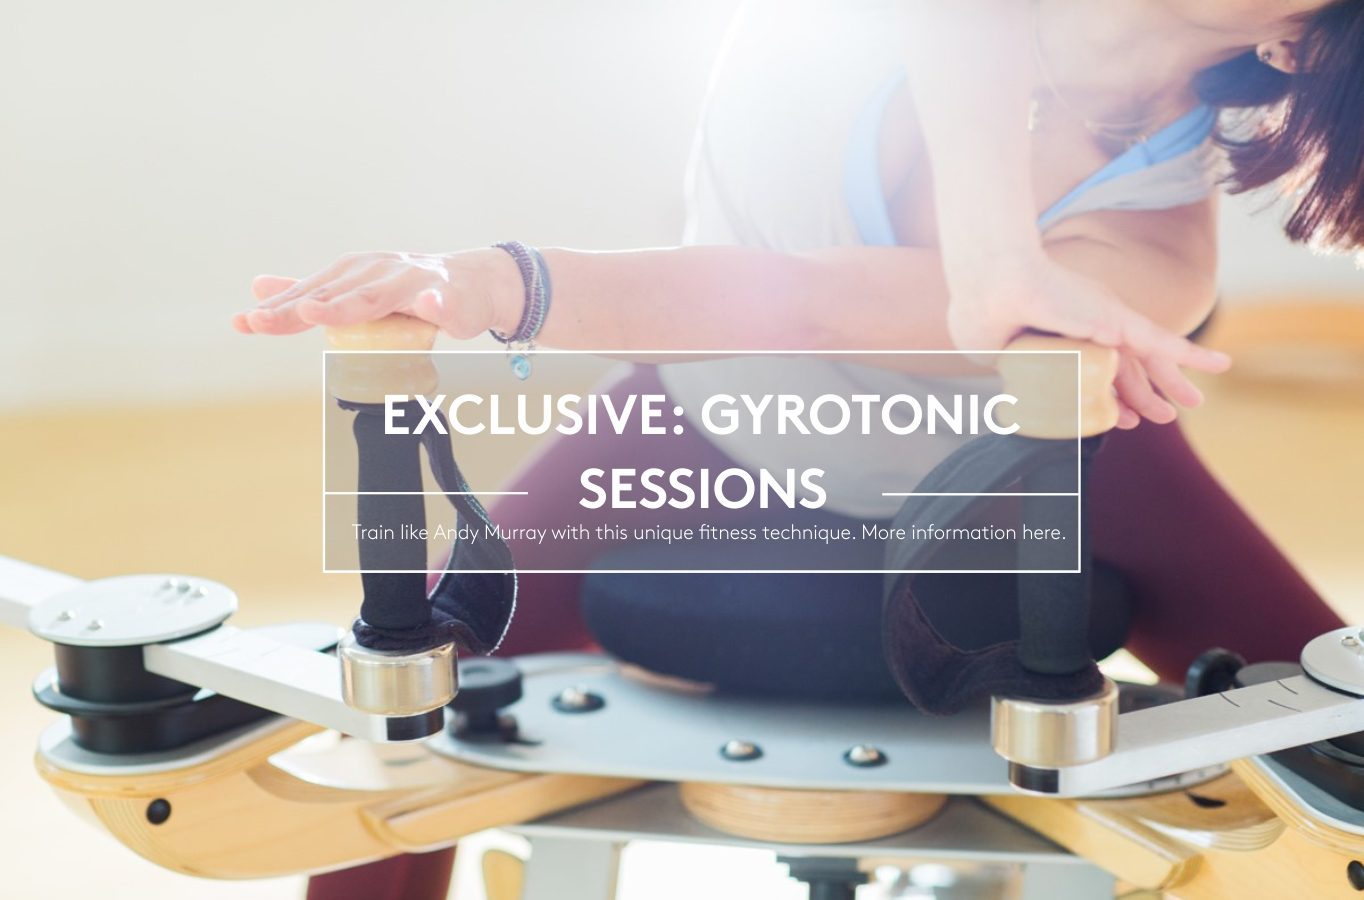 Gyrotonic Sessions at The Hundred Wellness Centre